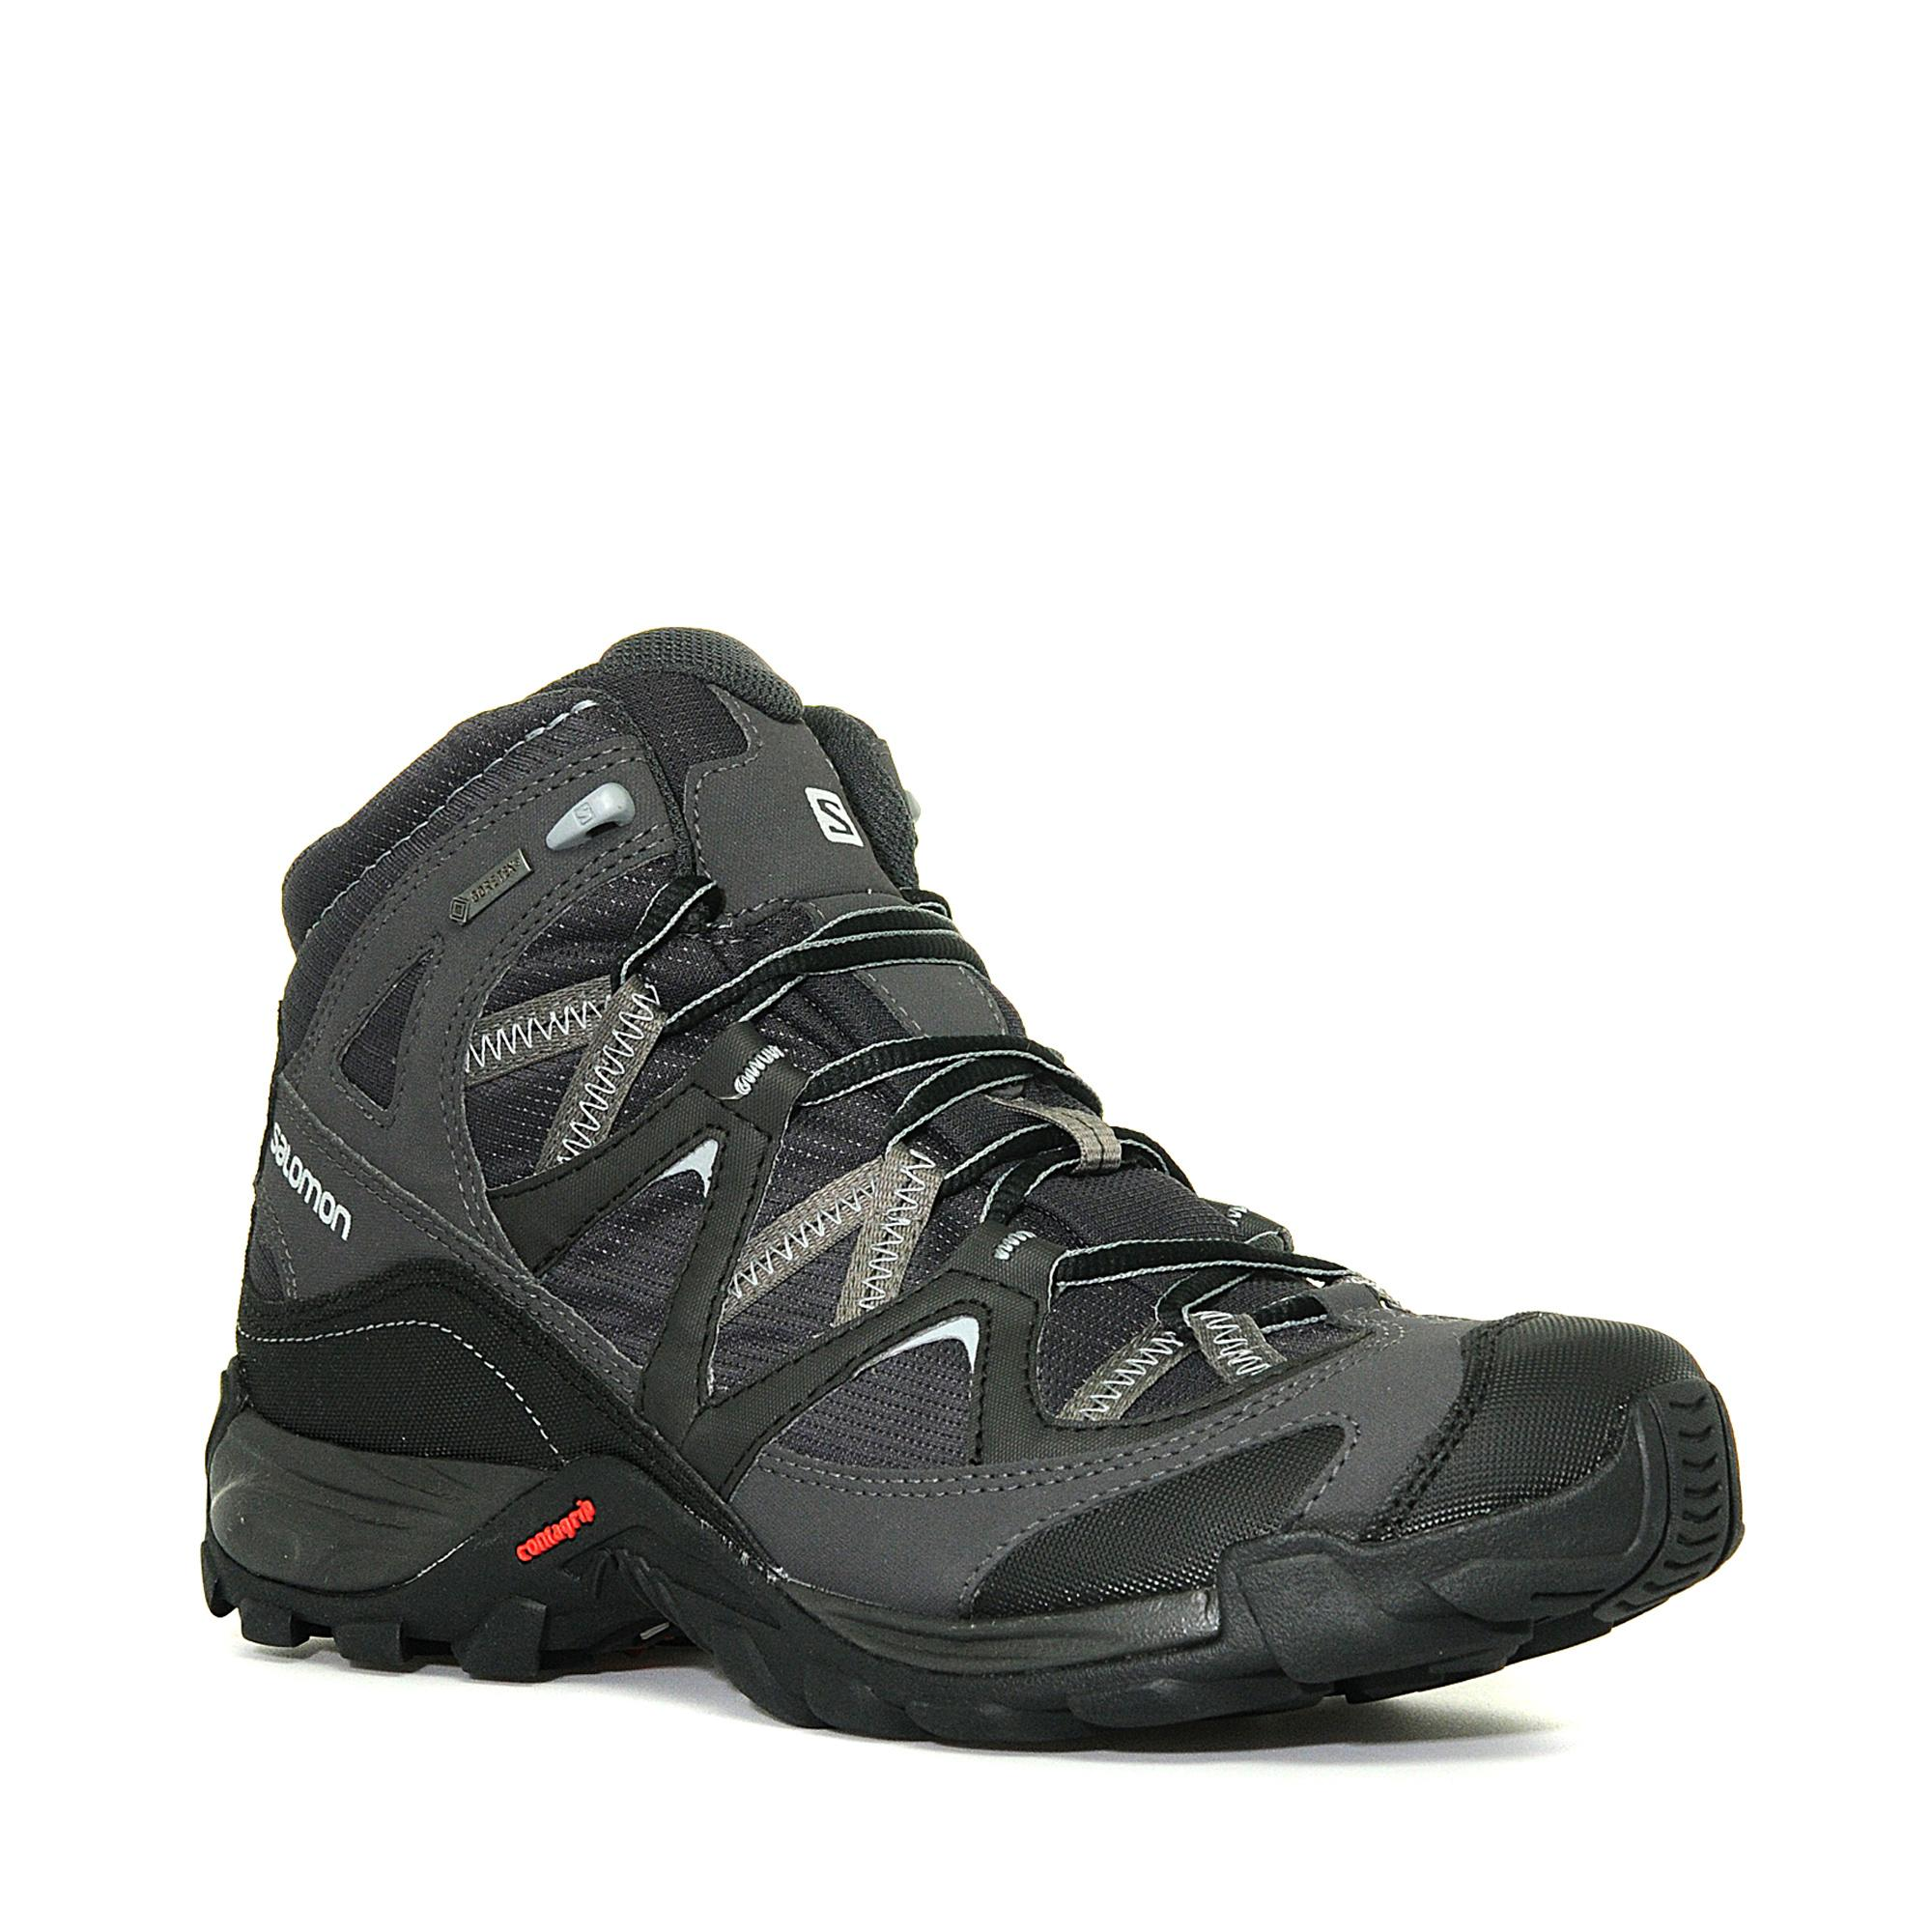 SIDI Adventure 2 Gore Tex Mid Boots: First Look [New for